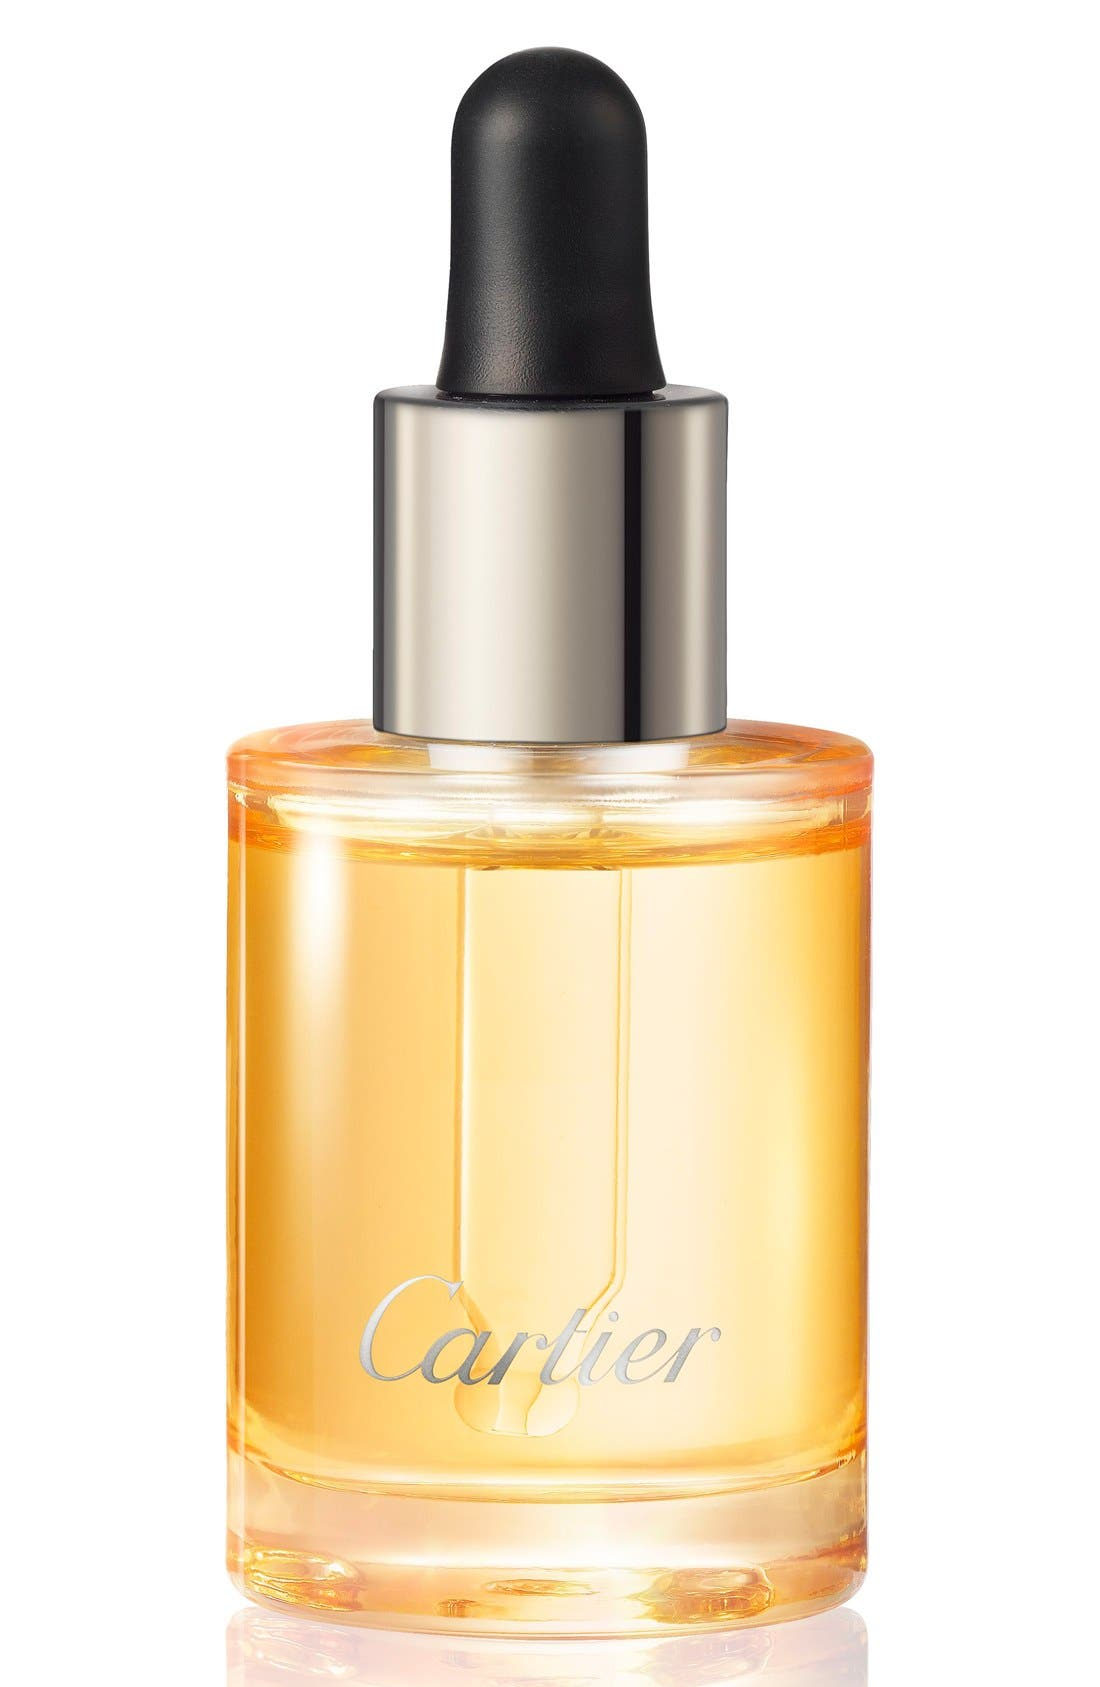 Cartier 'L'Envol de Cartier' Perfumed Grooming Oil